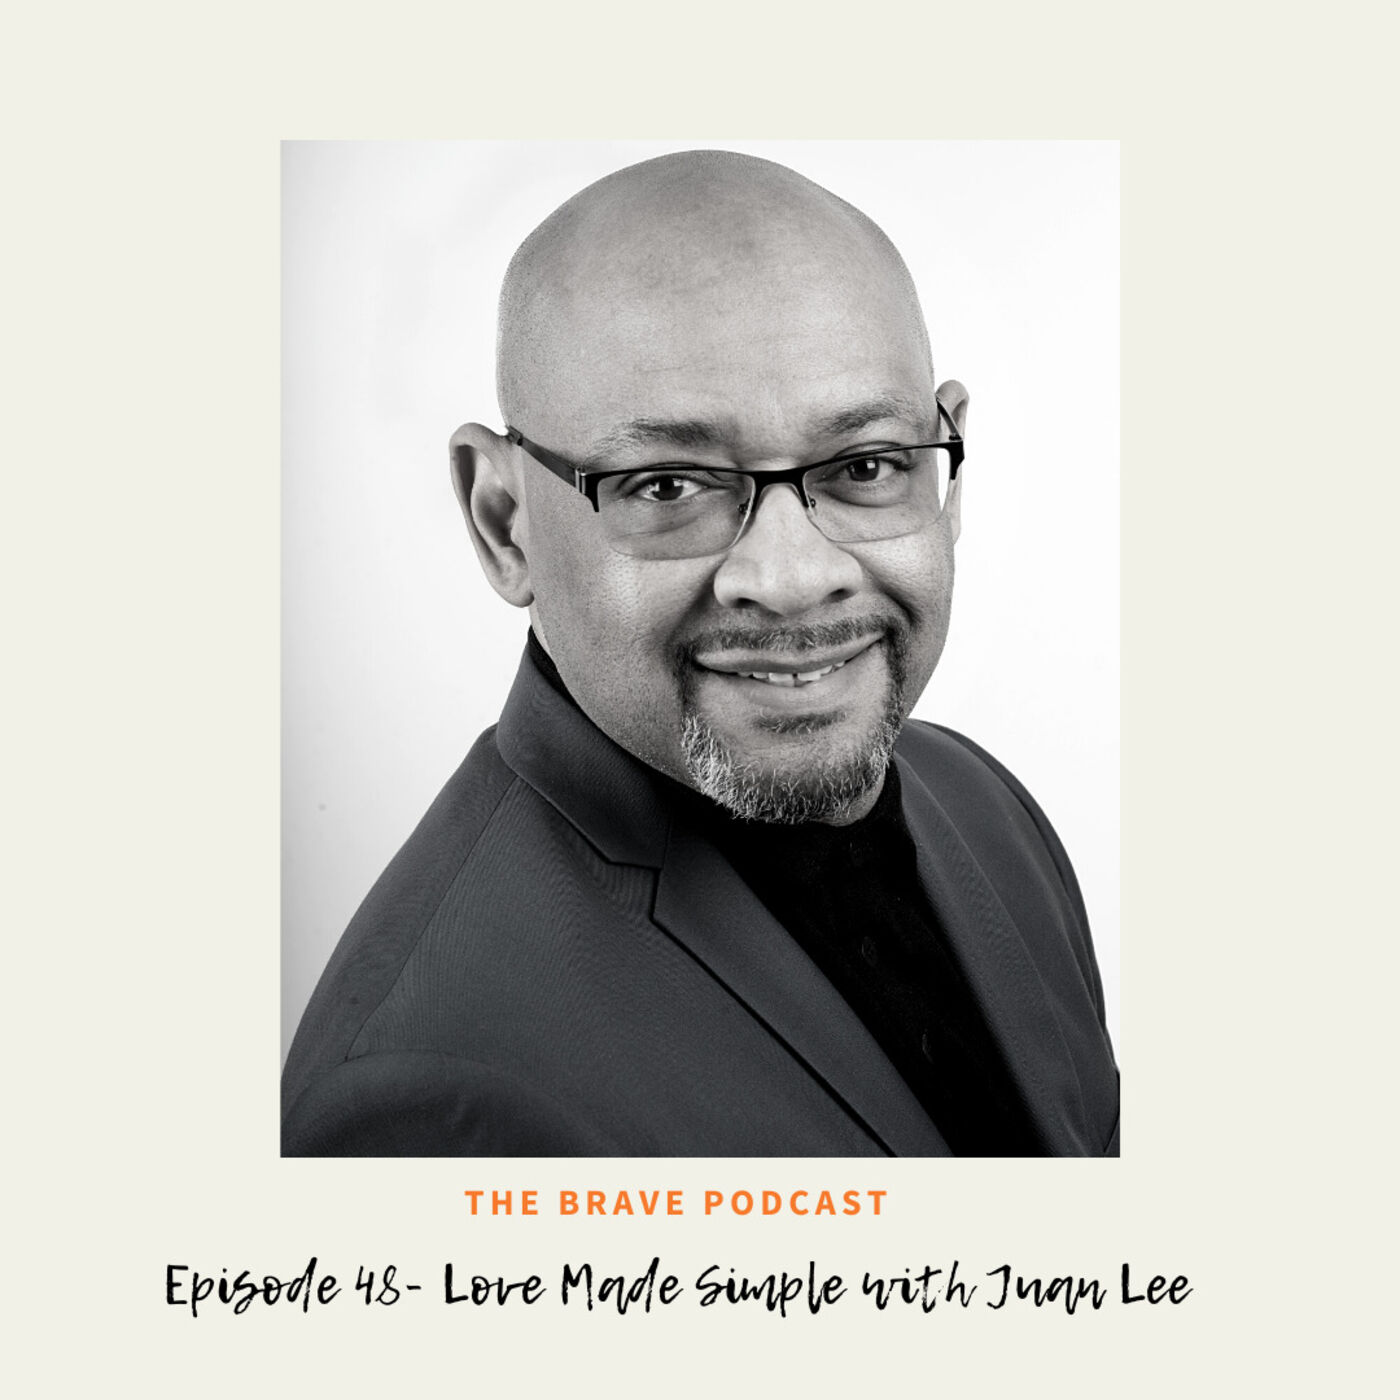 Love Made Simple with Juan Lee